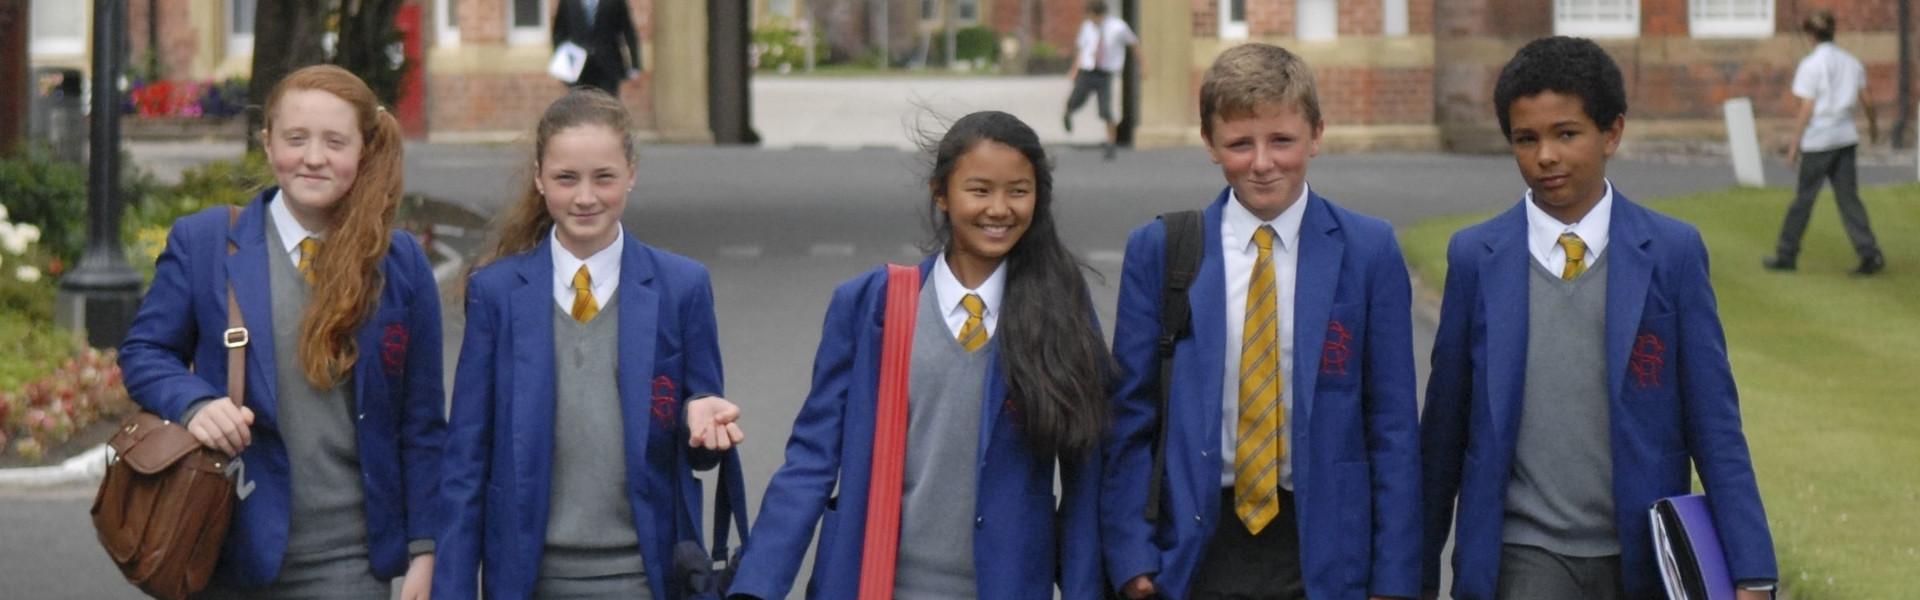 Students at Rossall School